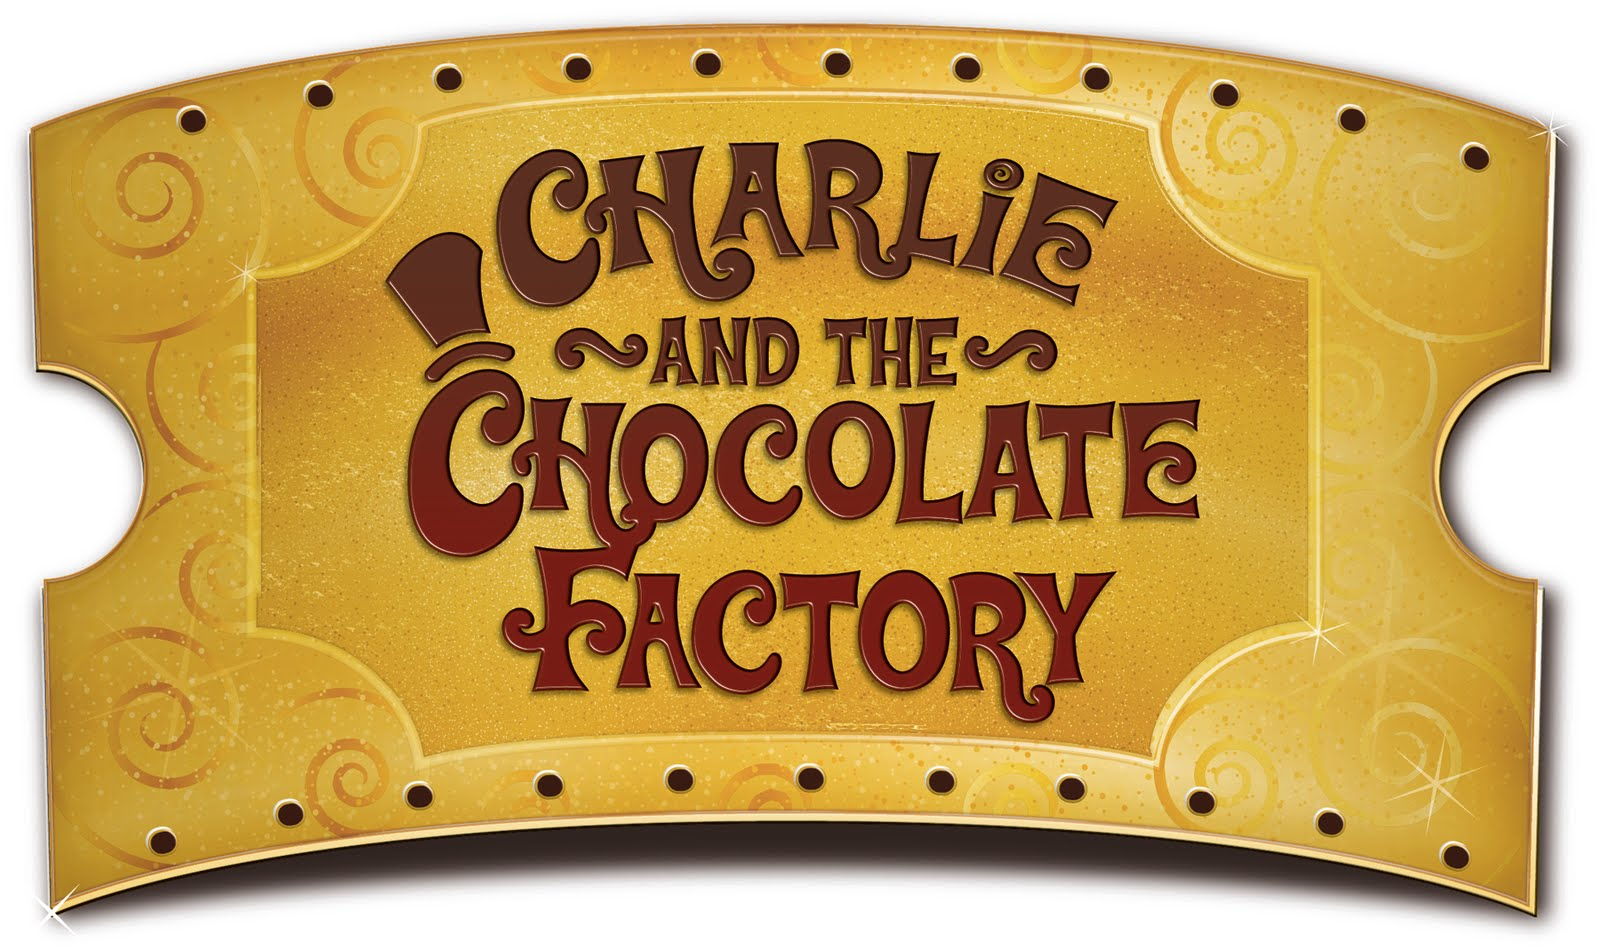 best images about charlie and the chocolate factory on 17 best images about charlie and the chocolate factory party table centerpieces candy canes and birthday party ideas